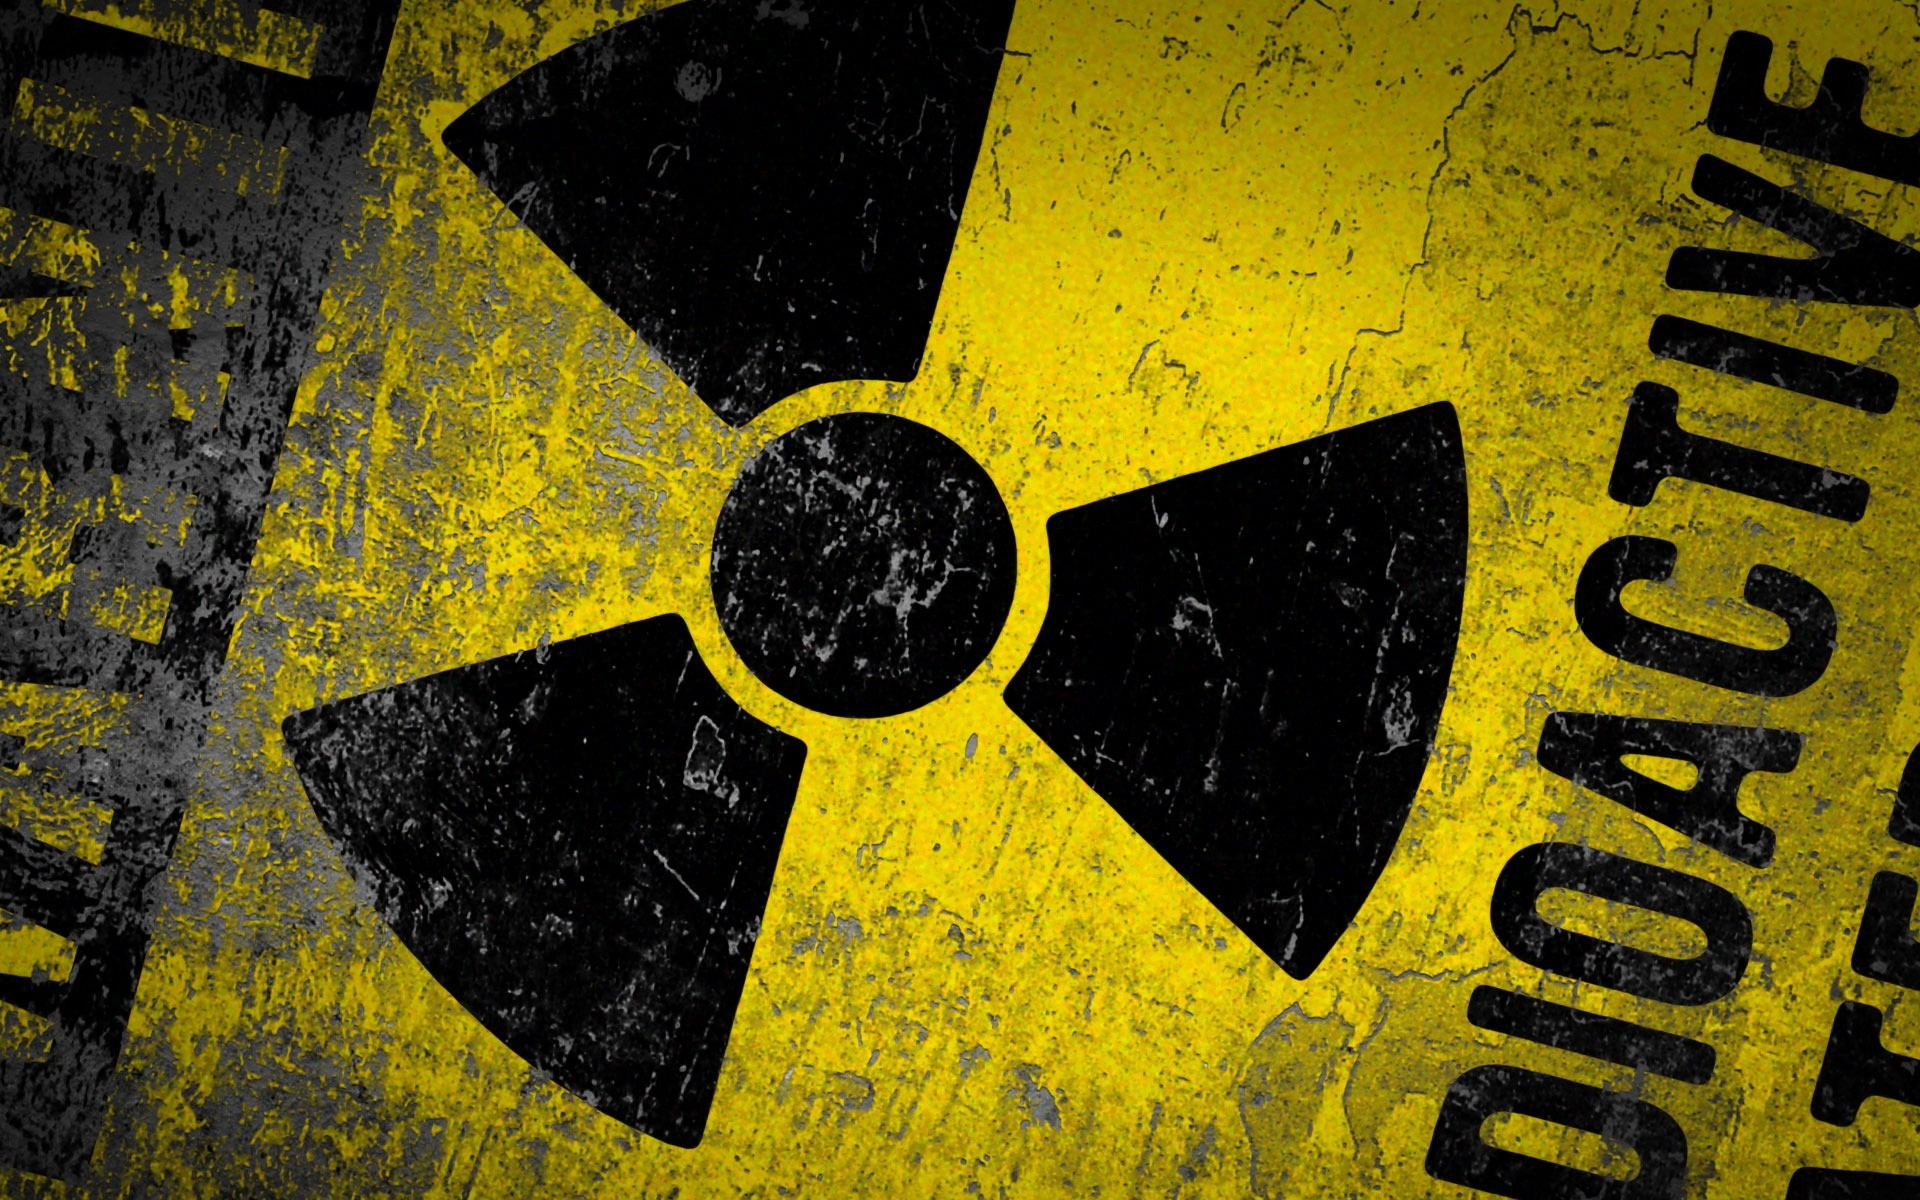 Res: 1920x1200, Radioactive Wallpaper Miscellaneous Other Wallpapers